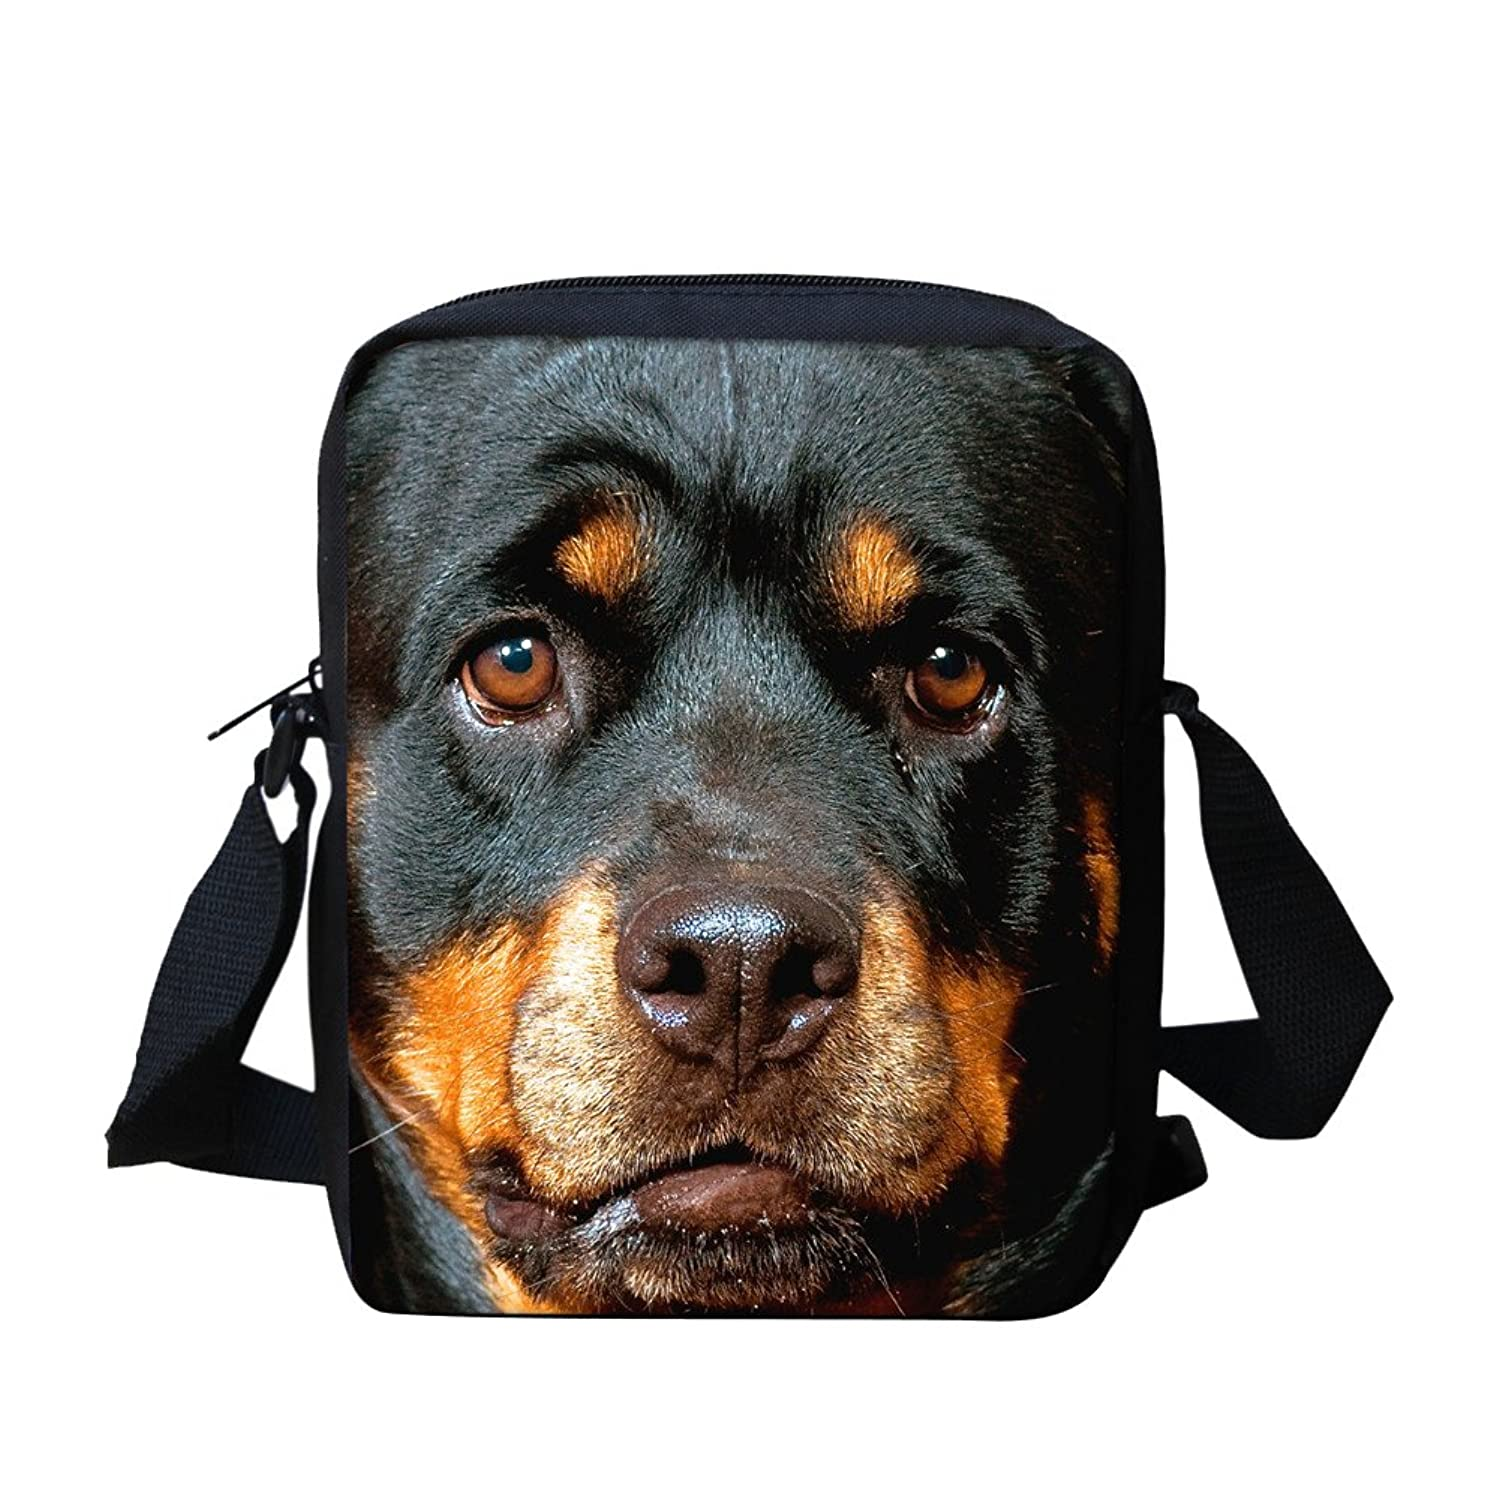 3D Dog Kids Messenger Bags for School Cross Body Shoulder Bag Cute for  Travel fce4c7b095def